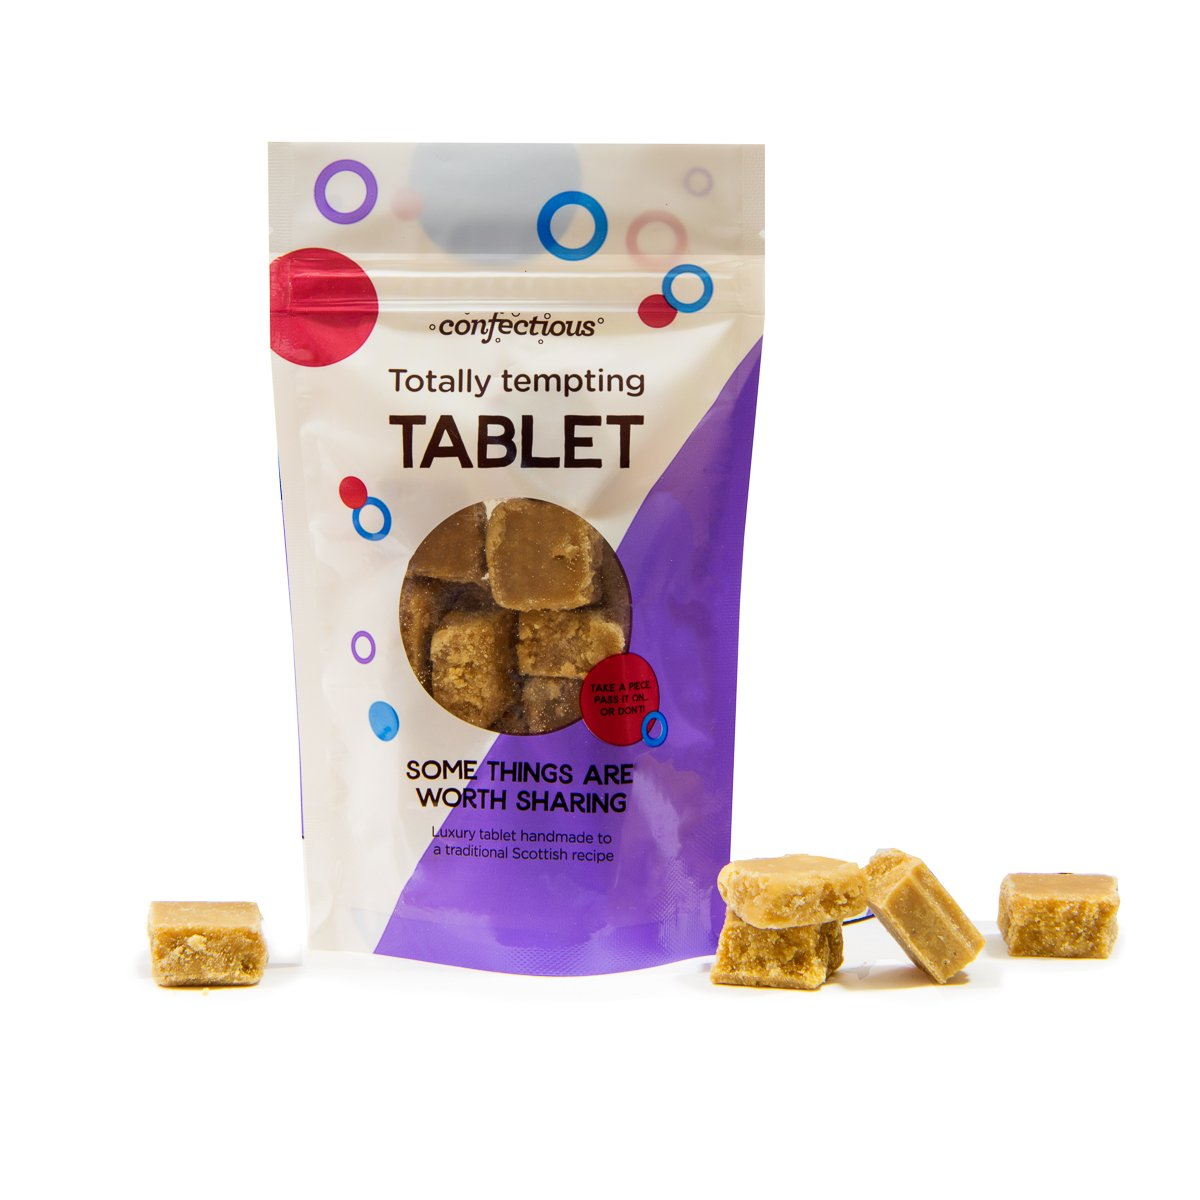 Scottish Totally Tempting Tablet 150g Sharing Bag